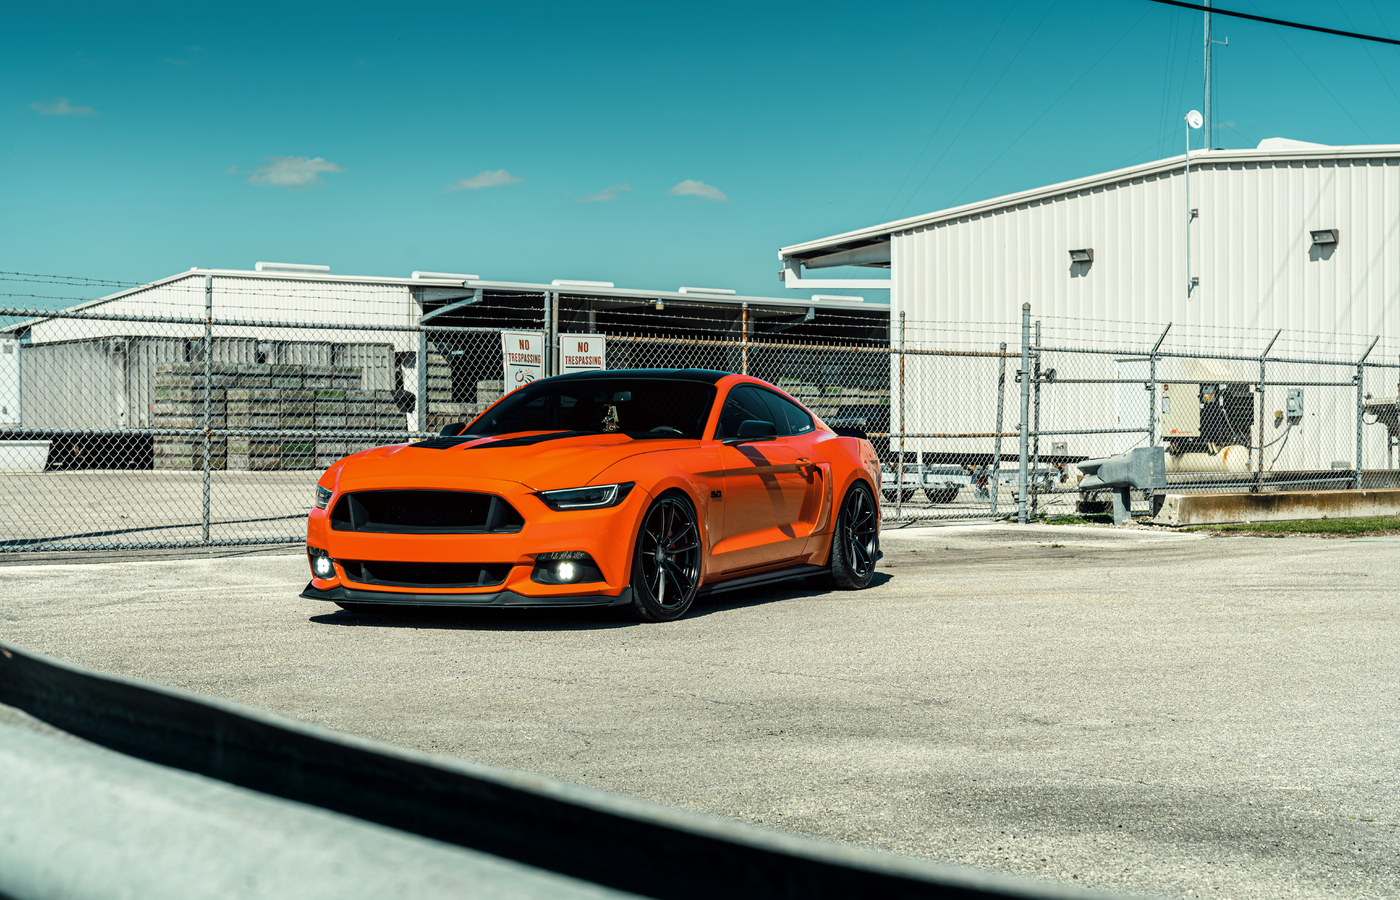 velgen-wheels-orange-mustang-8k-tn.jpg